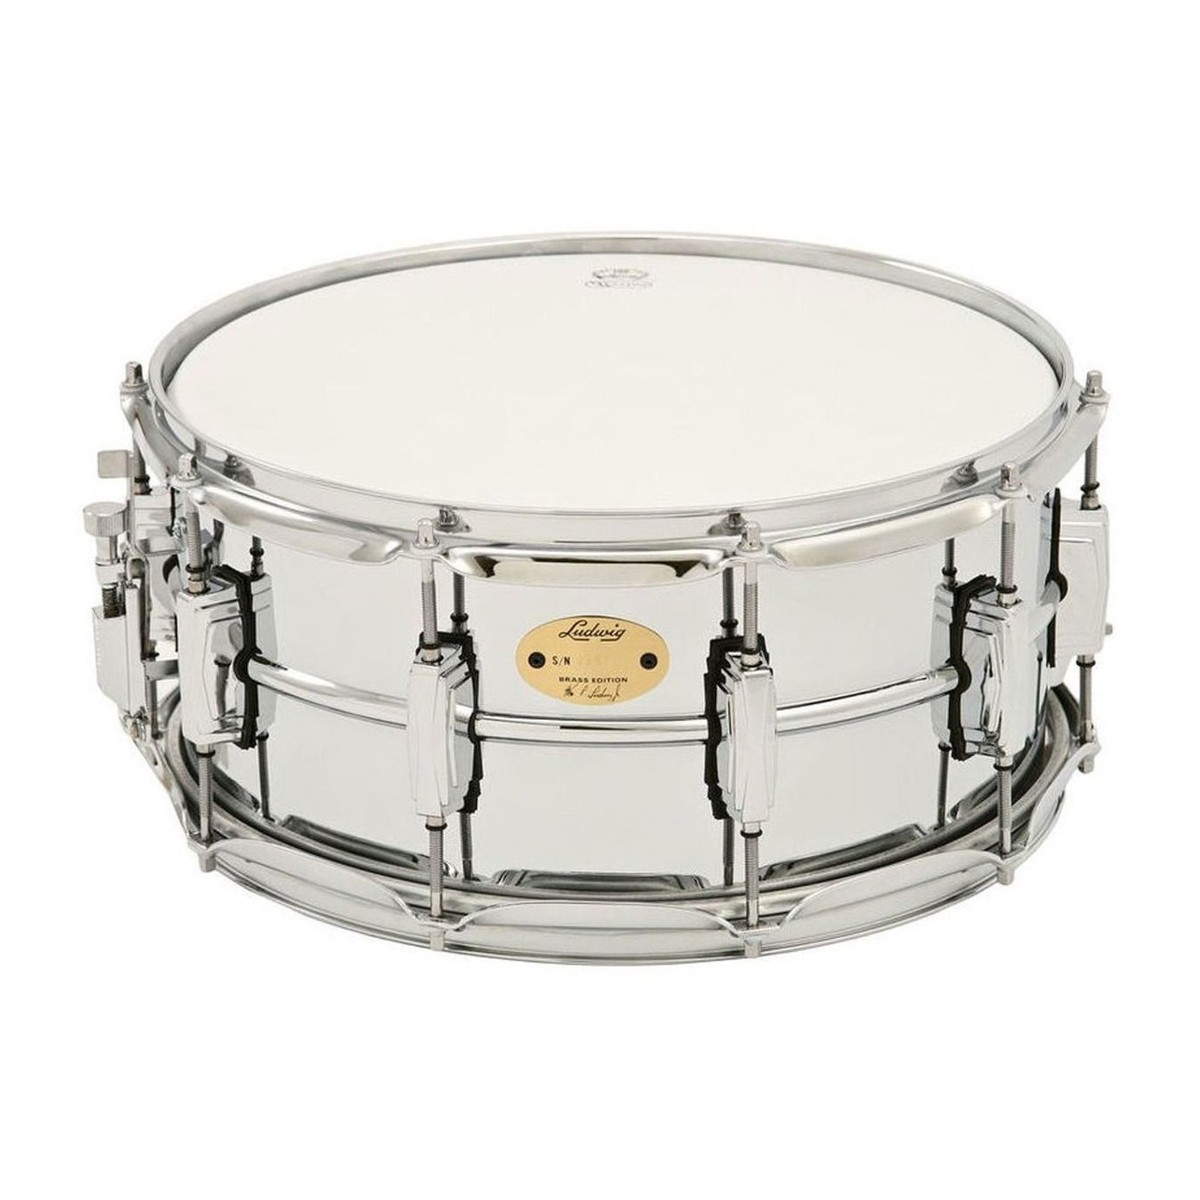 Caja Ludwig Chrome Supra-phonic 14x6.5 1